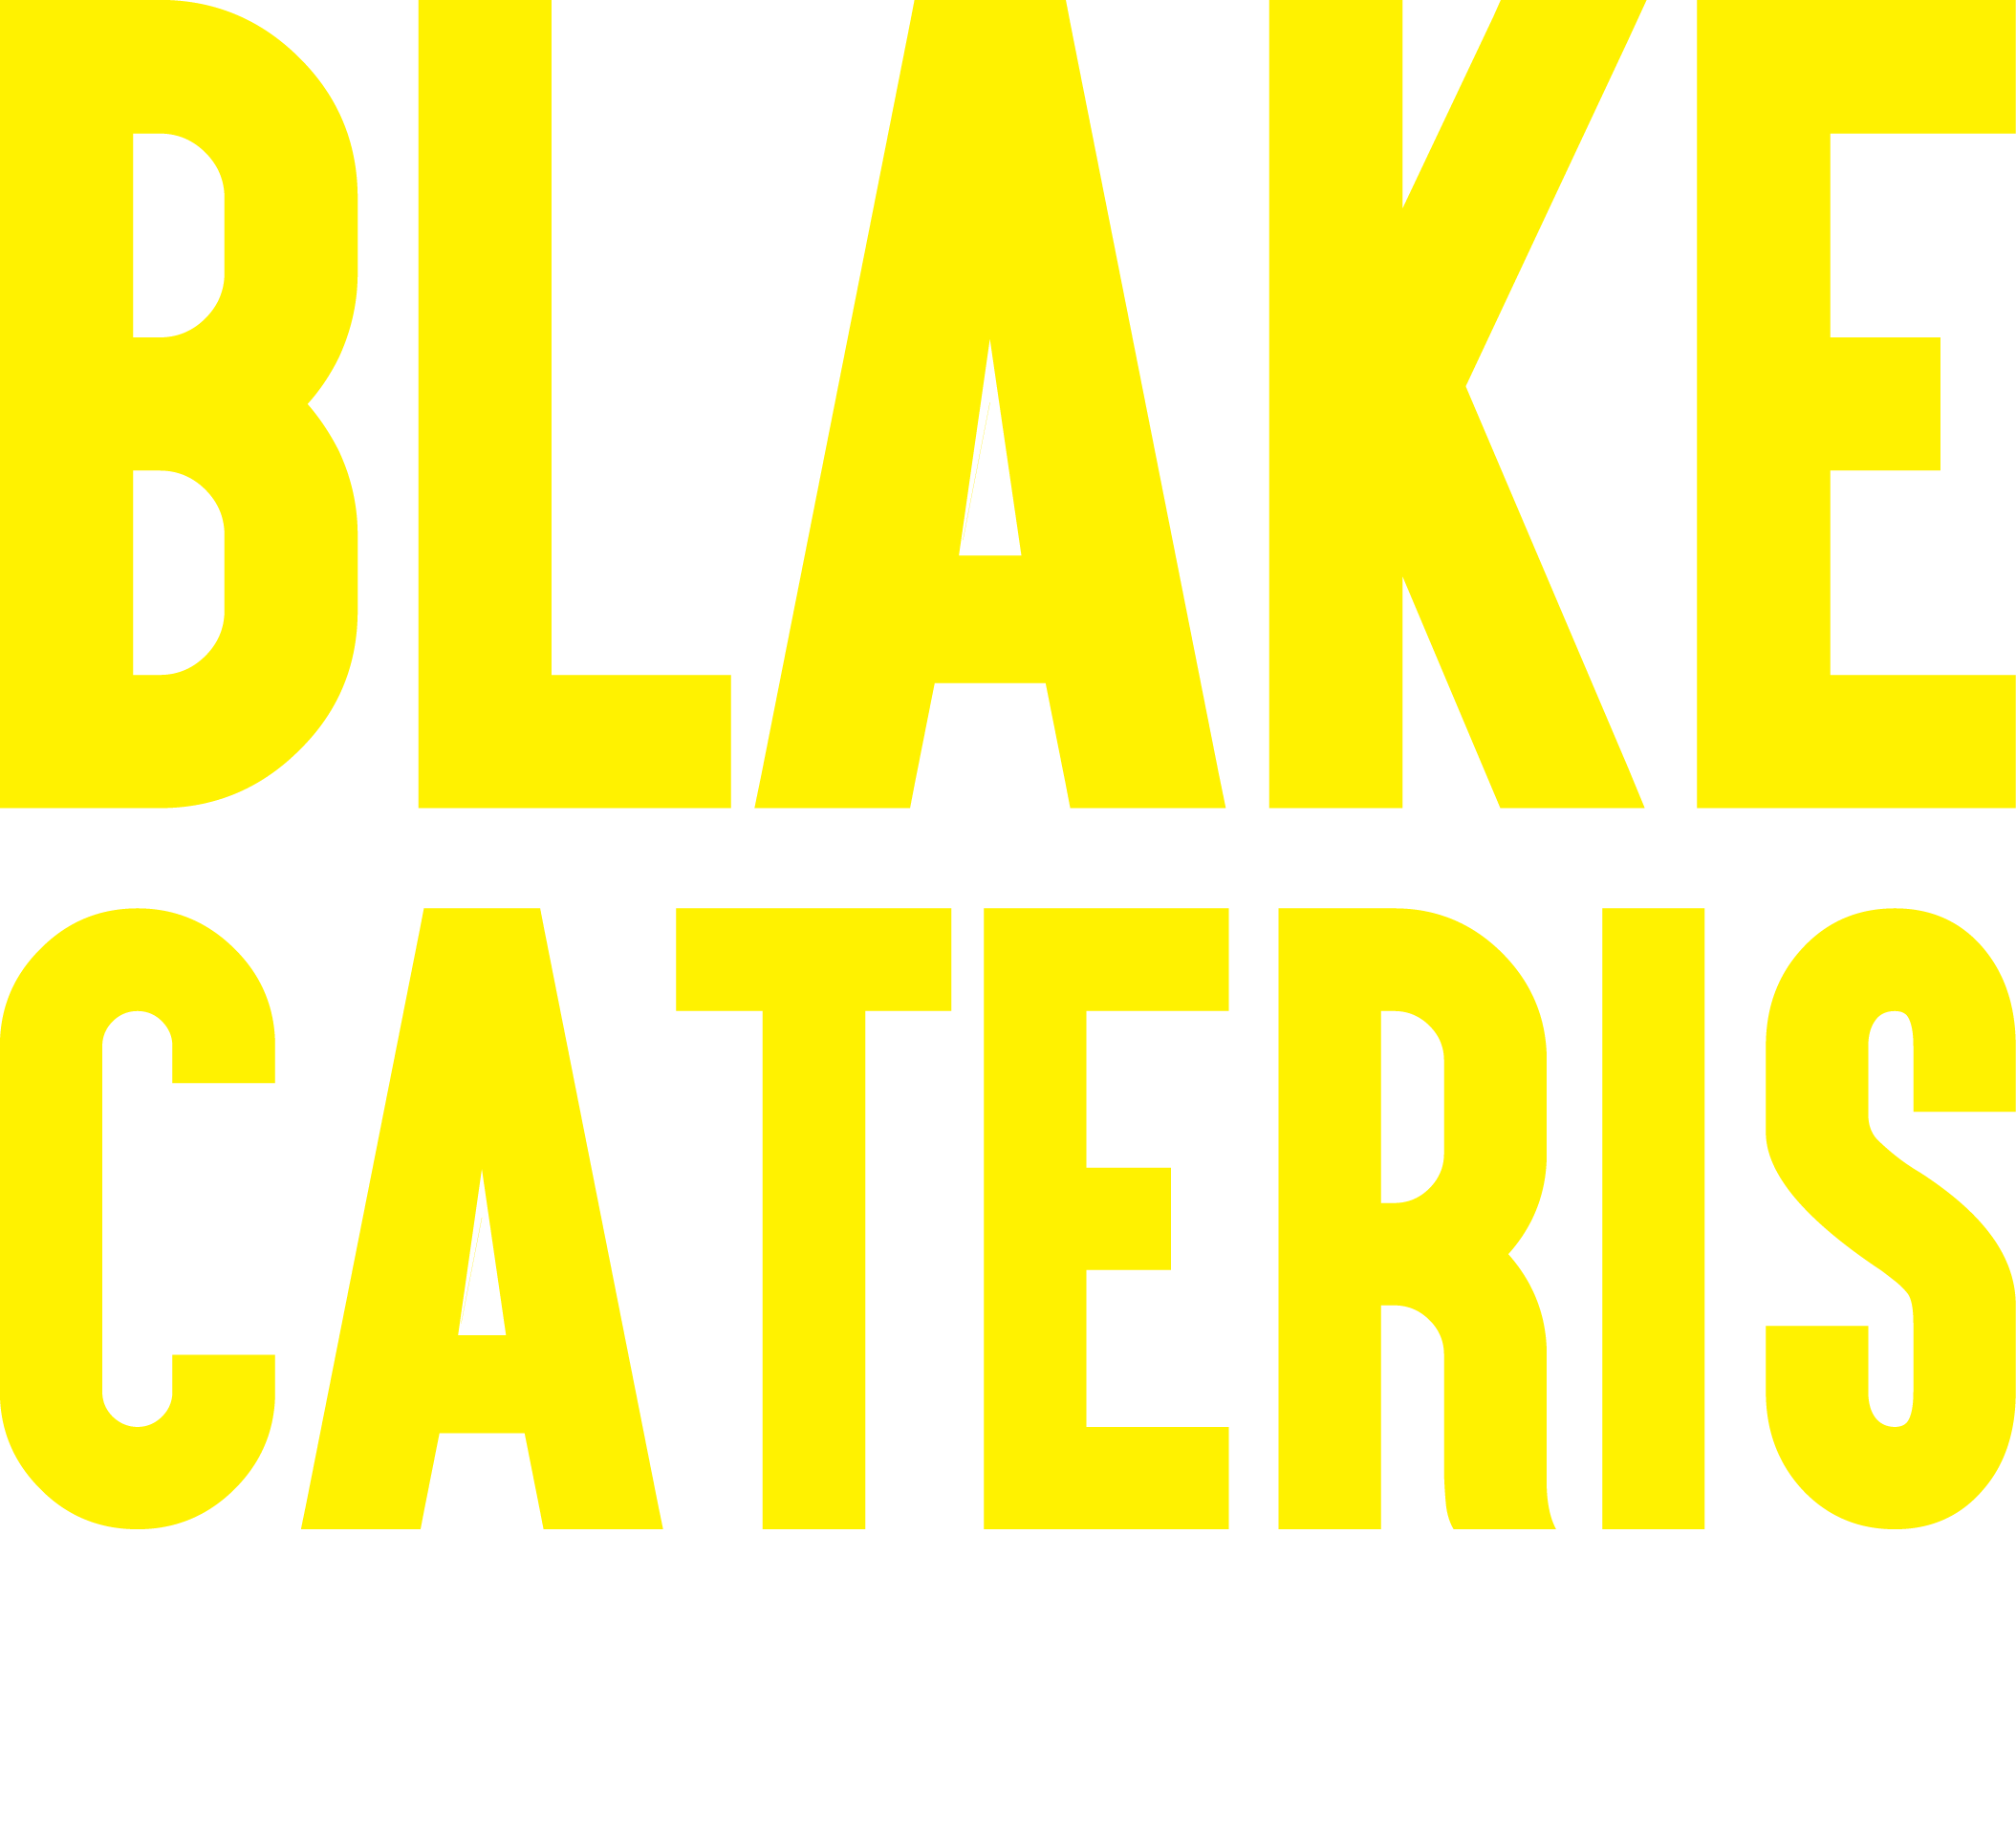 Blake Cateris Music